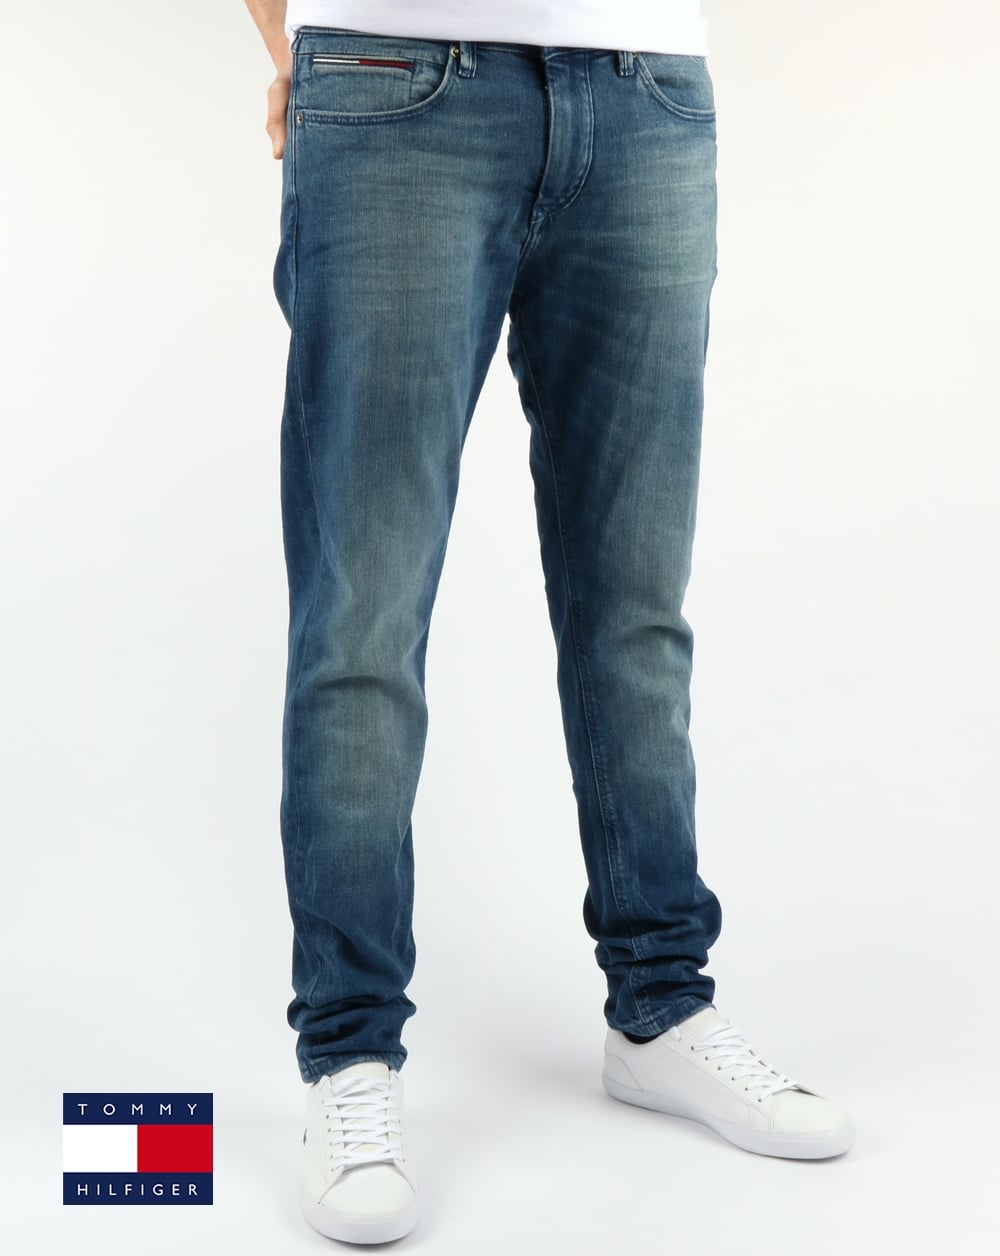 8fae72a10bb Tommy Hilfiger Jeans Tommy Hilfiger Steve Slim Tapered Fit Jeans Berry Mid  Blue Comfort